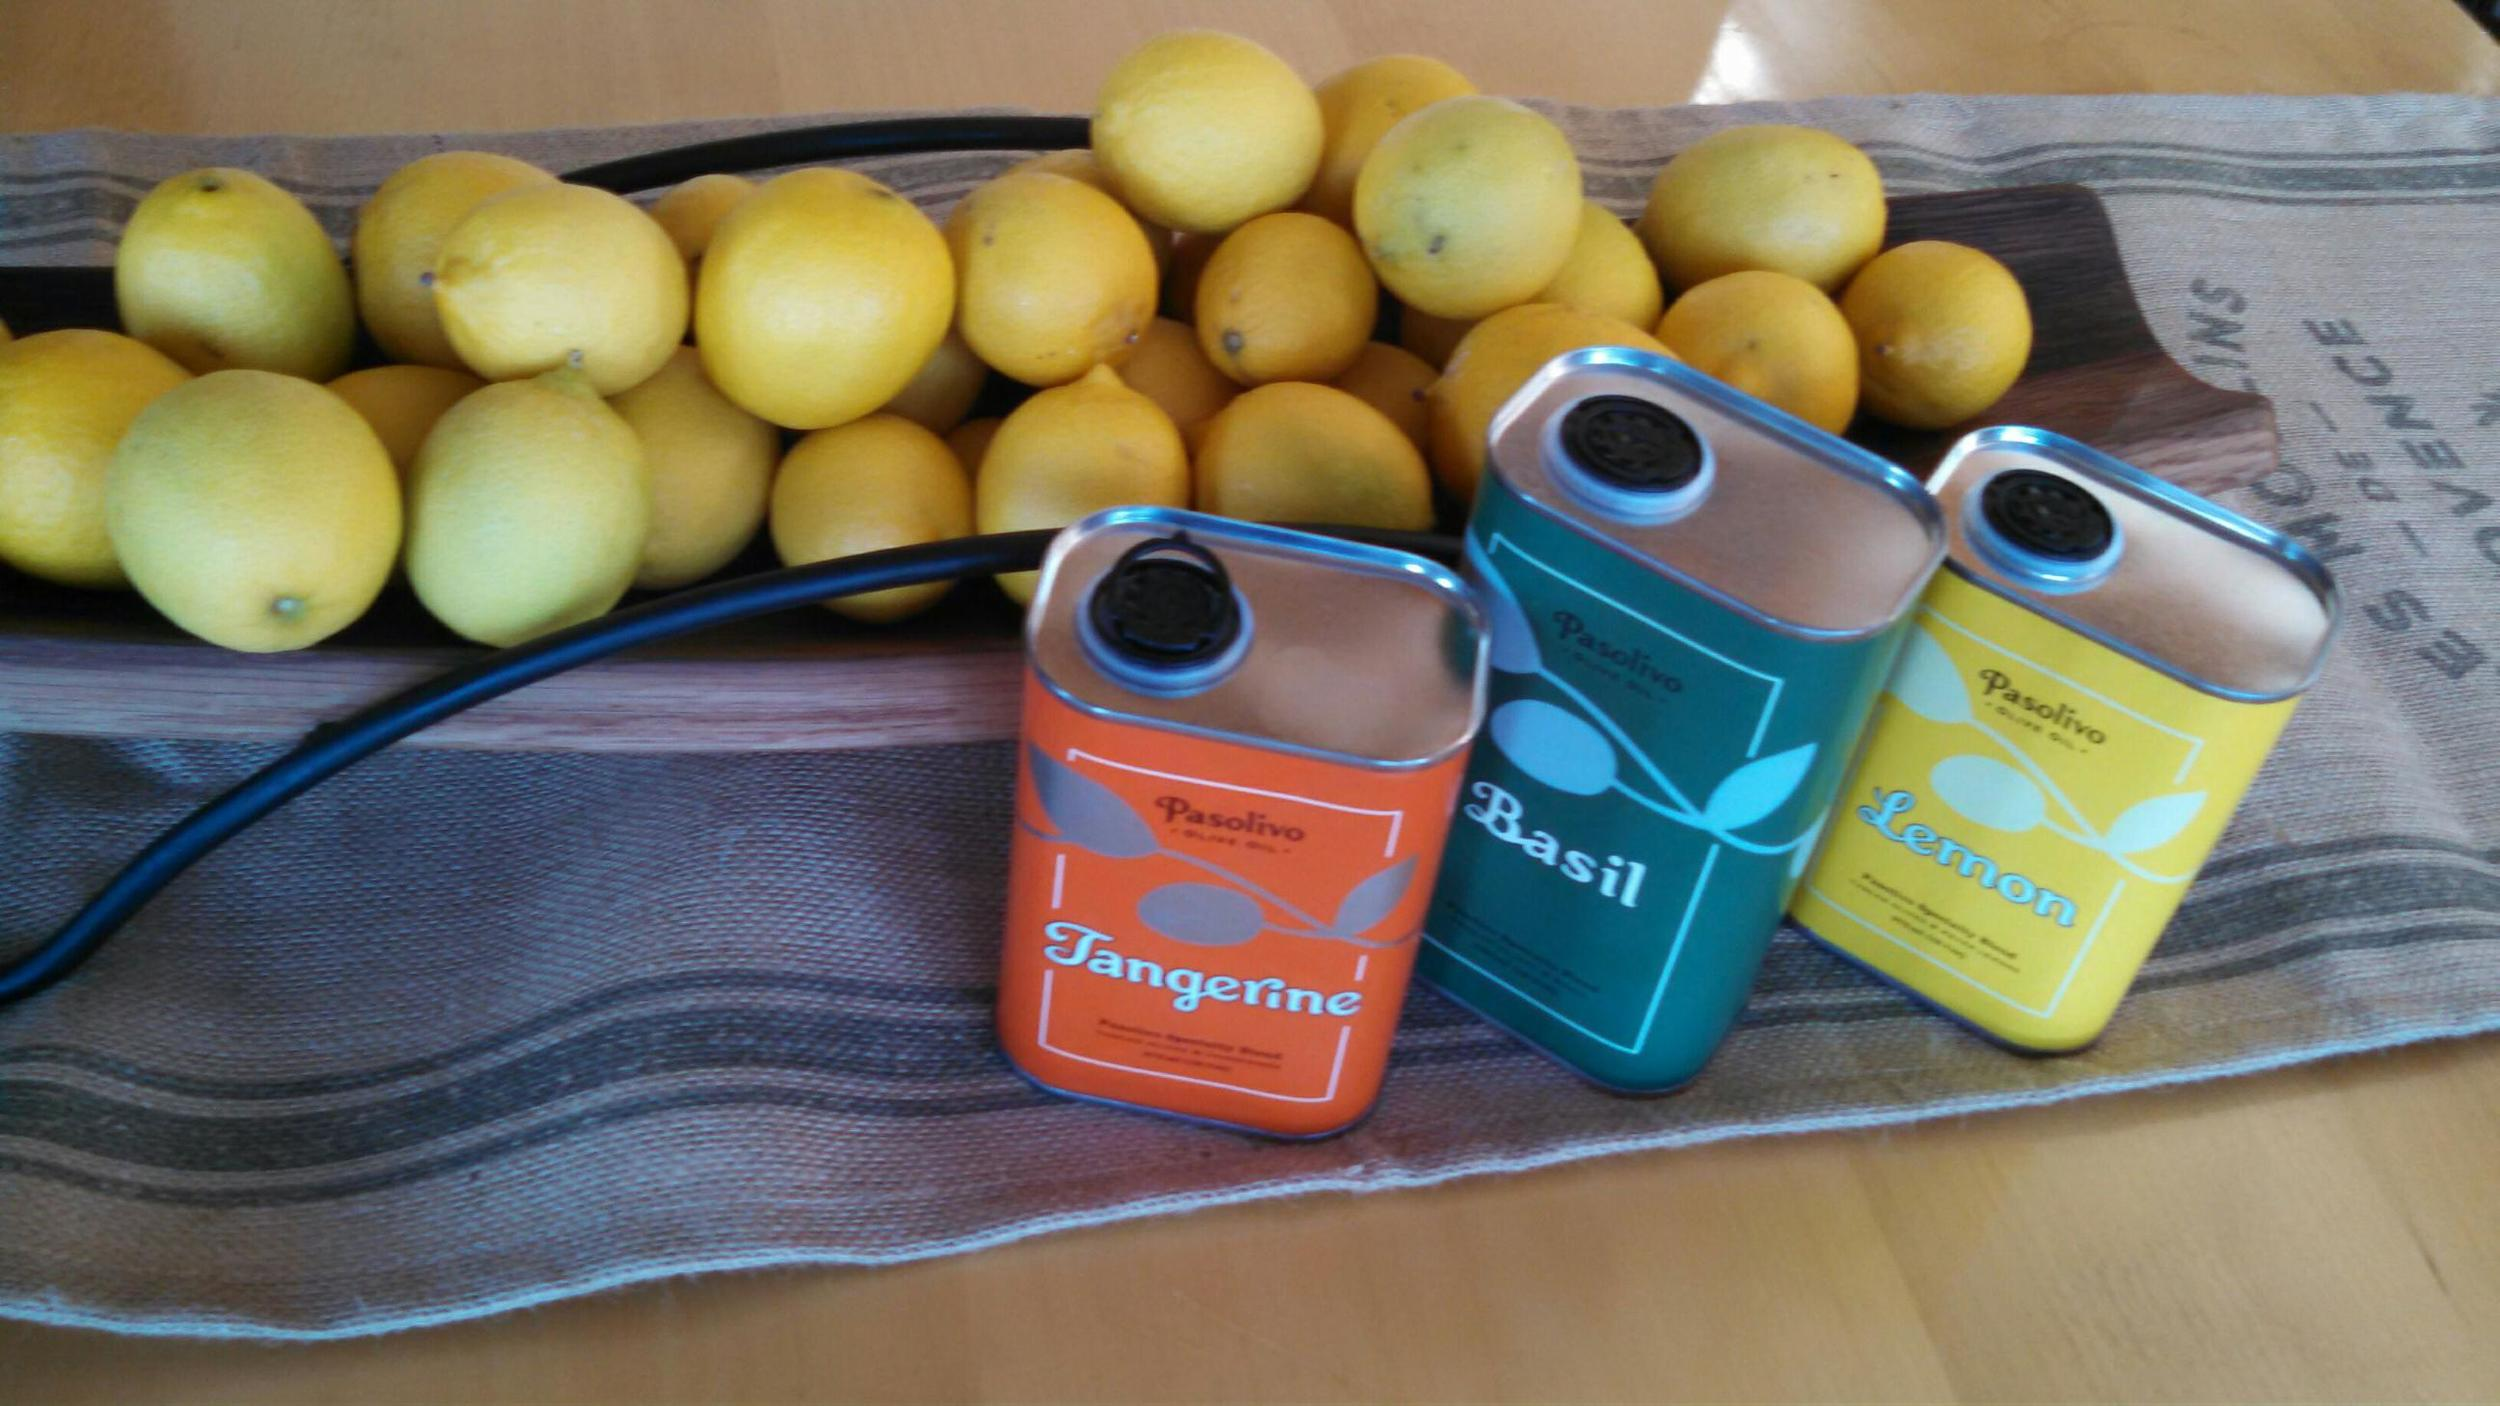 Meyer lemons from my own tree -- with my favorite Paolivo flavored oilve oils